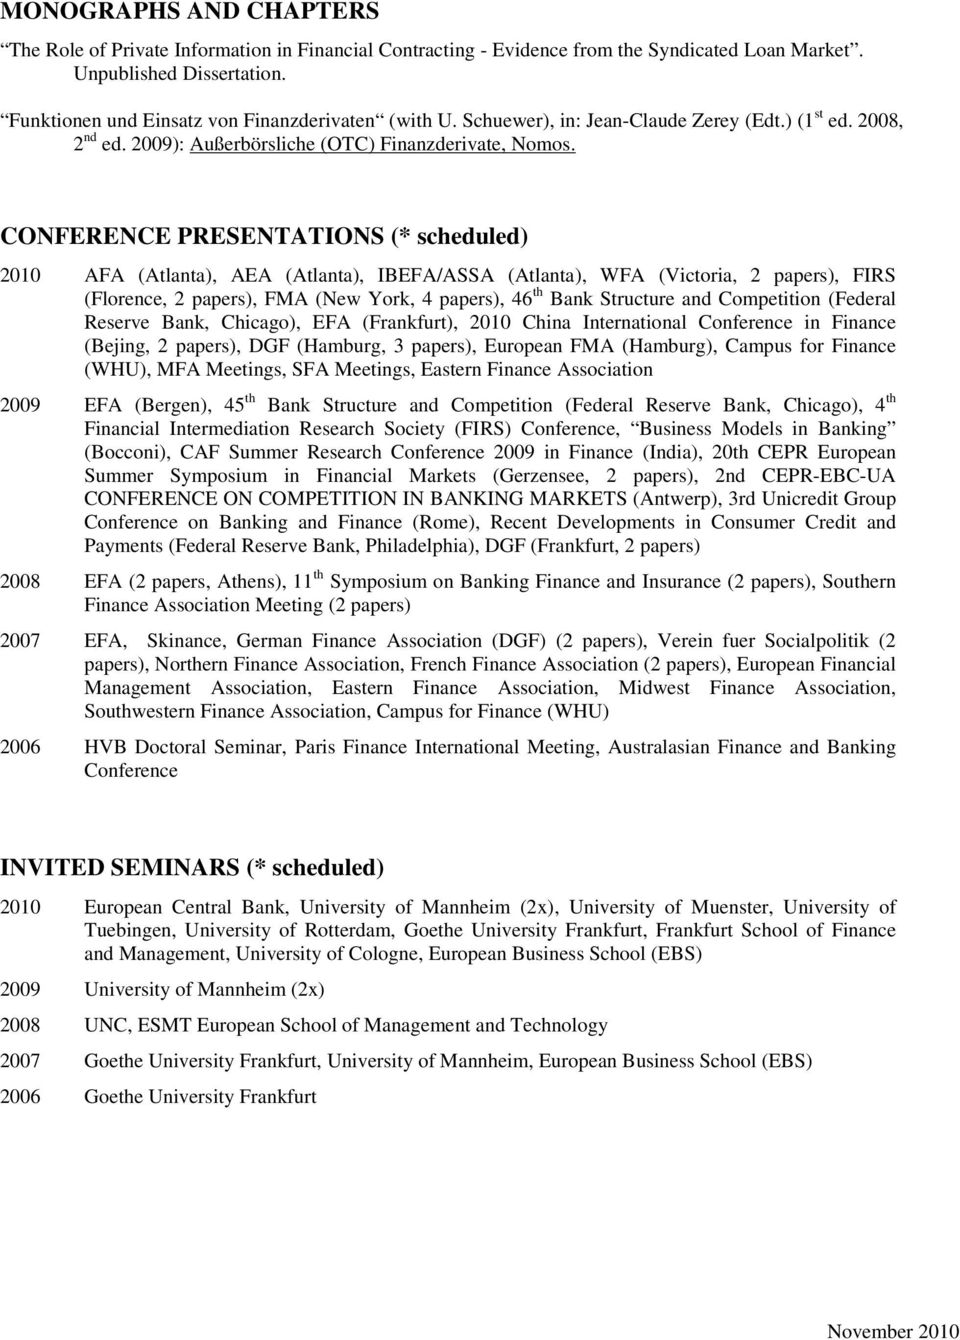 CONFERENCE PRESENTATIONS (* scheduled) 2010 AFA (Atlanta), AEA (Atlanta), IBEFA/ASSA (Atlanta), WFA (Victoria, 2 papers), FIRS (Florence, 2 papers), FMA (New York, 4 papers), 46 th Bank Structure and